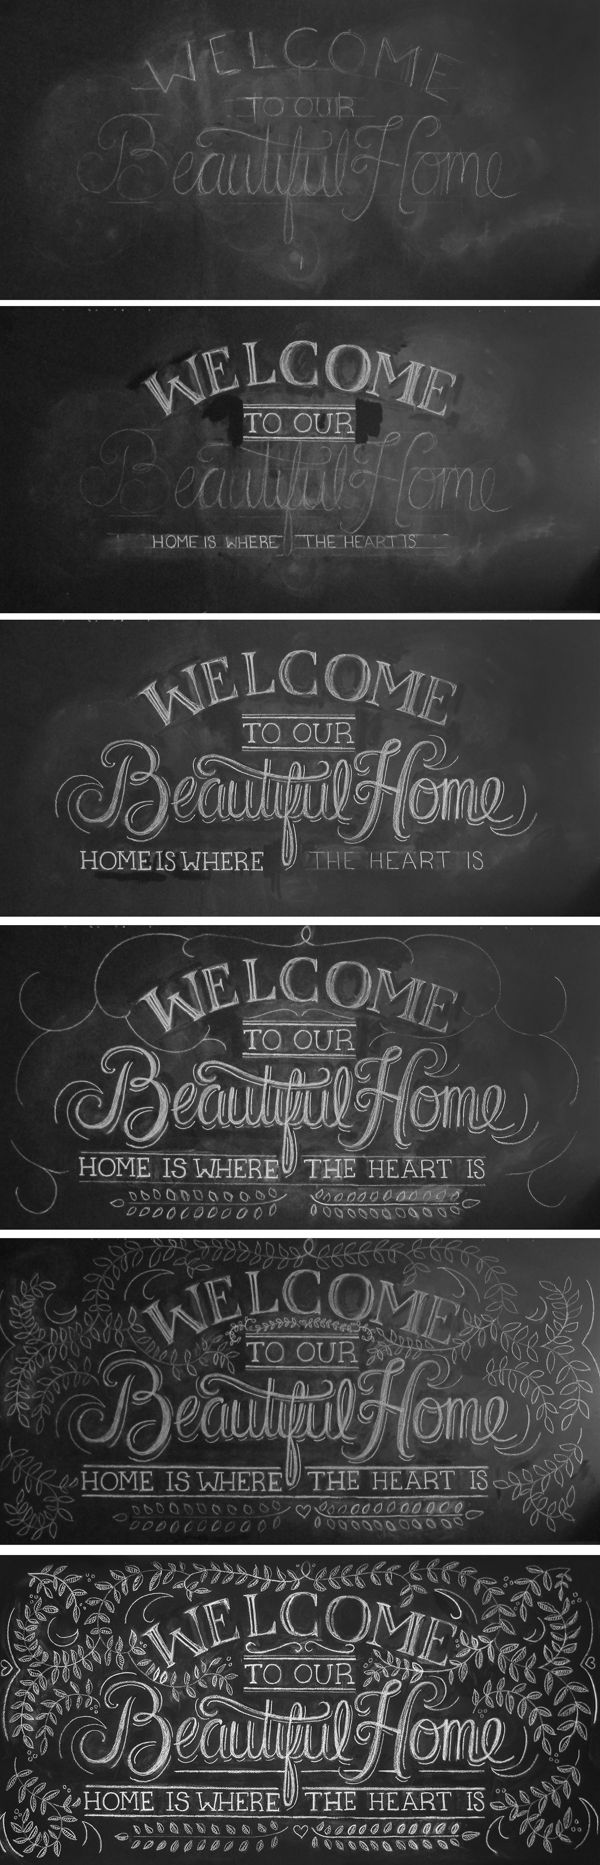 Chalk Typography by Valerie Waldbauer